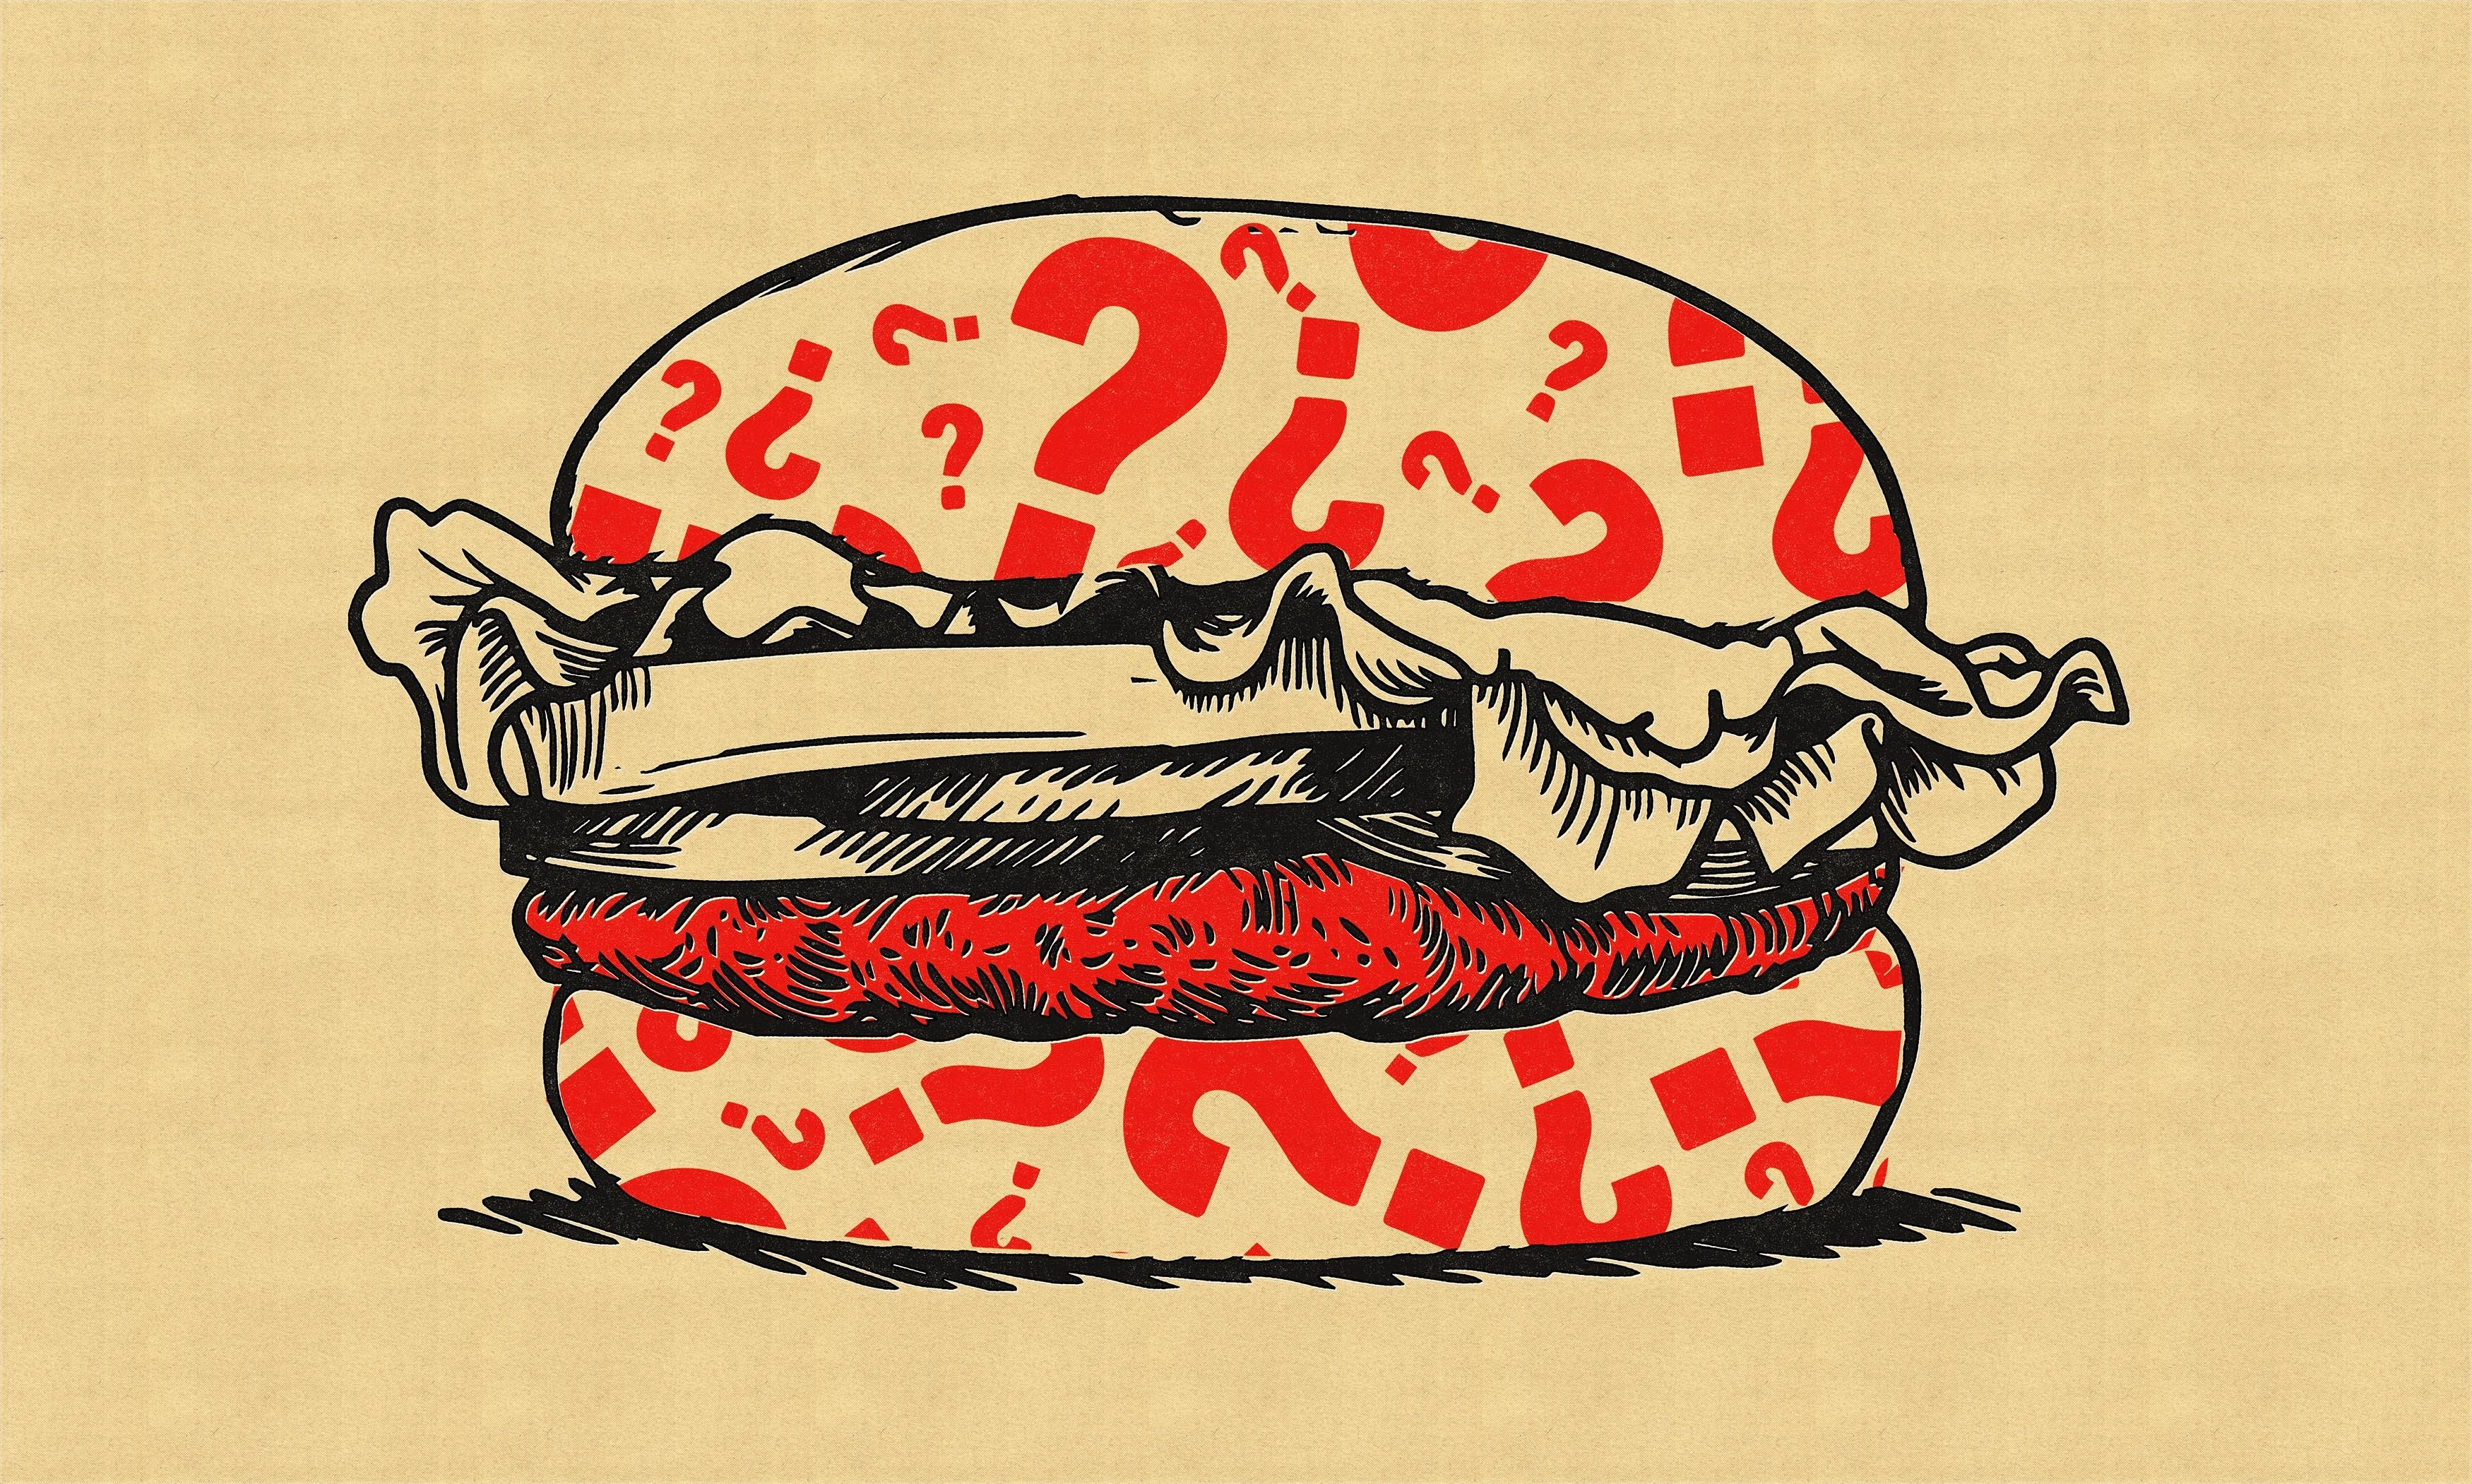 Illustration of a burger with question marks.